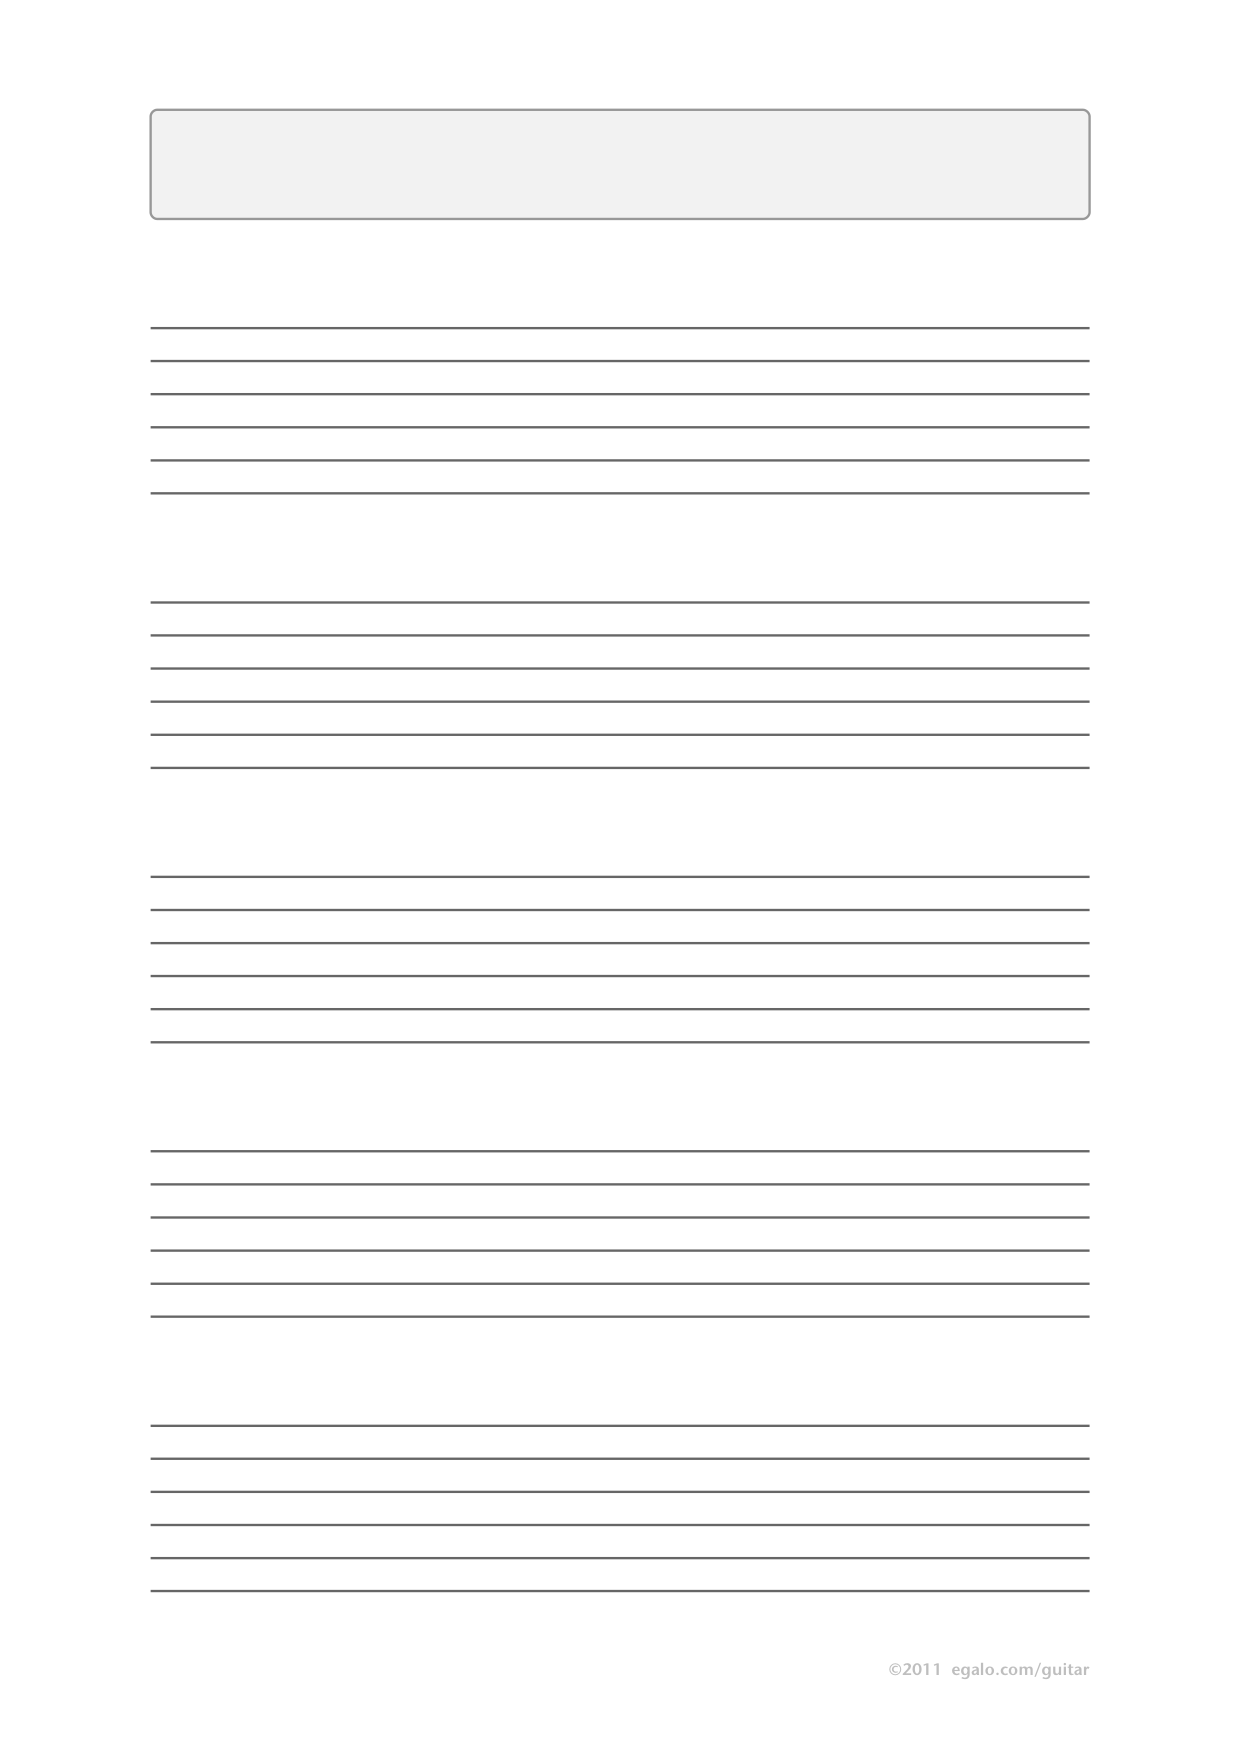 Blank Guitar Tab Sheets PDF